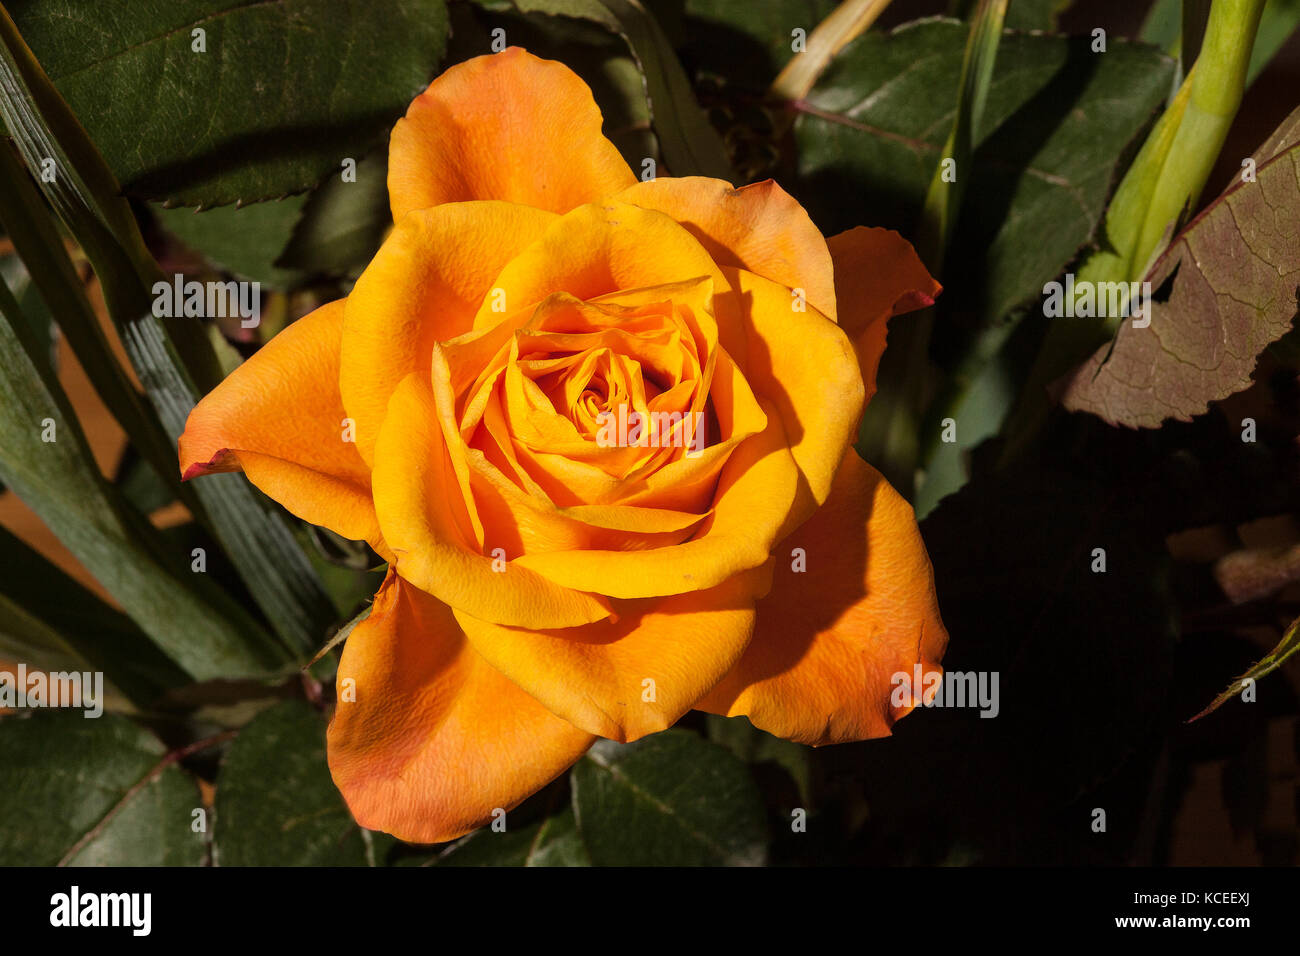 The yellow rose of texas stock photos the yellow rose of texas single yellow rose stock image mightylinksfo